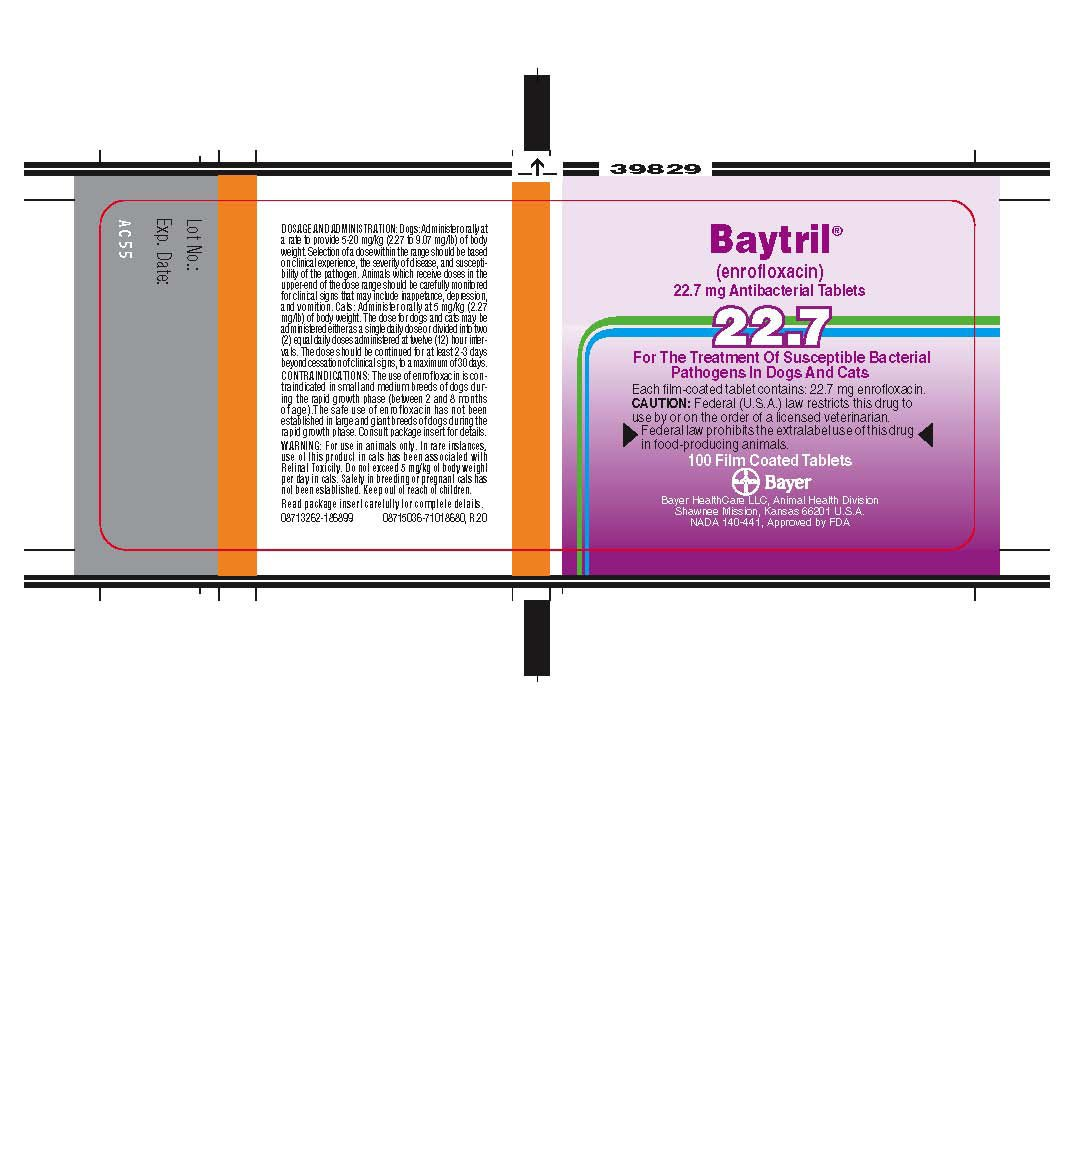 Baytril Fda Prescribing Information Side Effects And Uses Jpg 1075x1150 Proin Dosing Chart